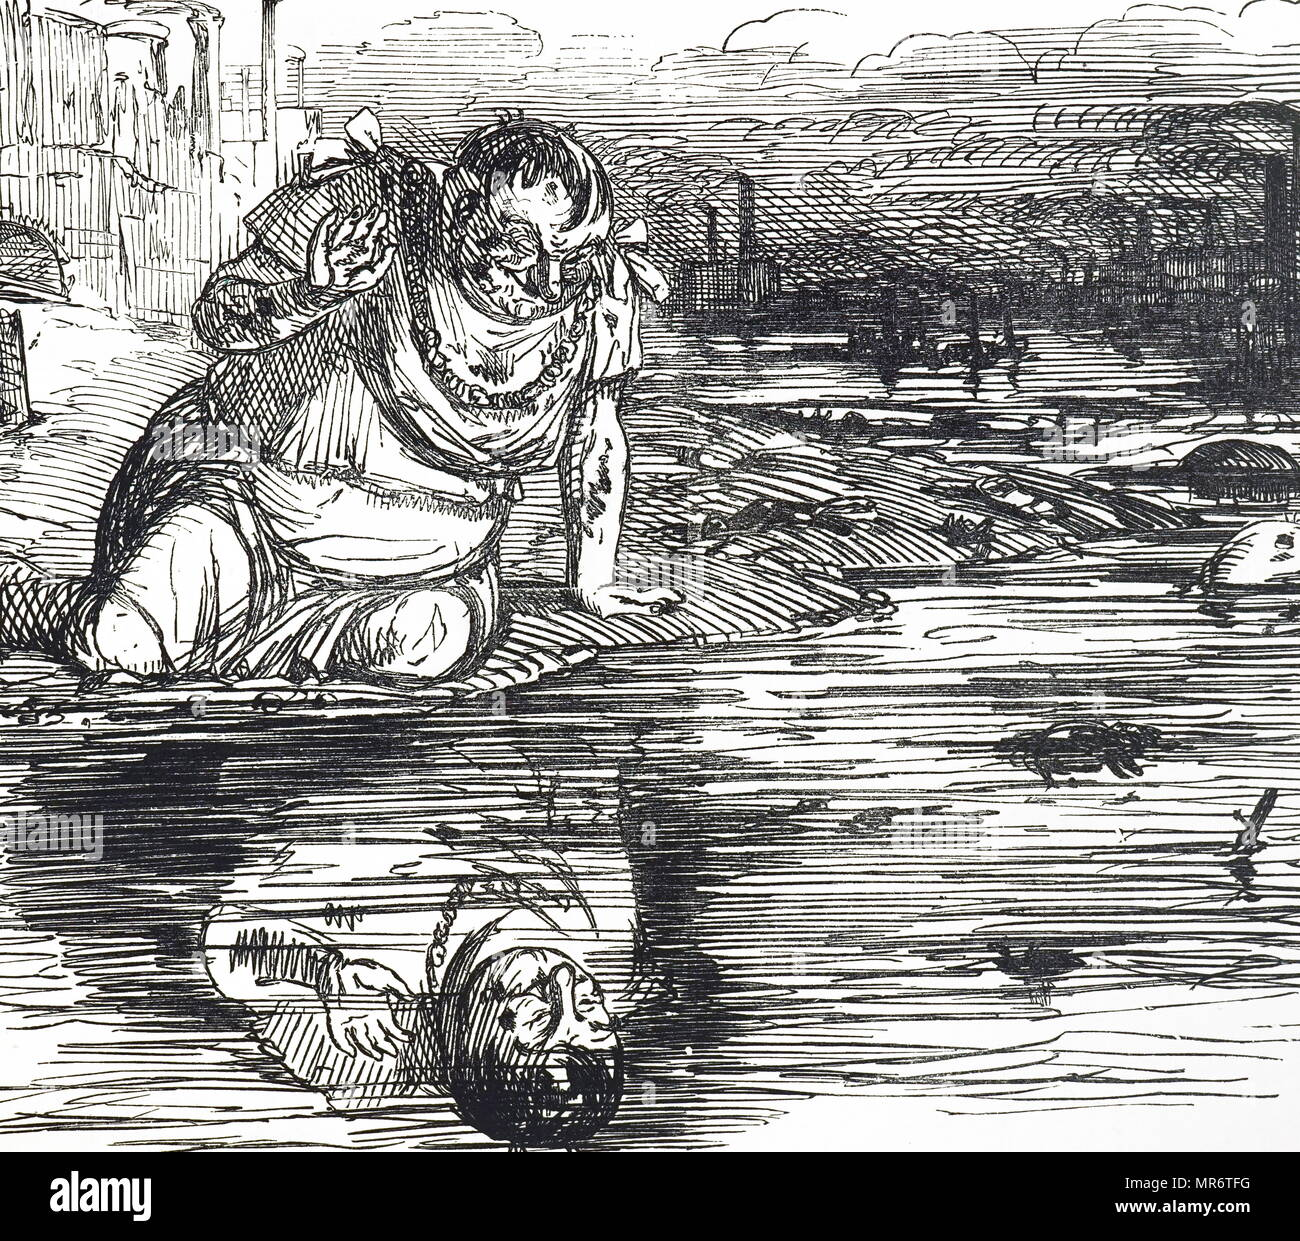 Cartoon commenting on the pollution of the Thames in London. Dated 19th century - Stock Image